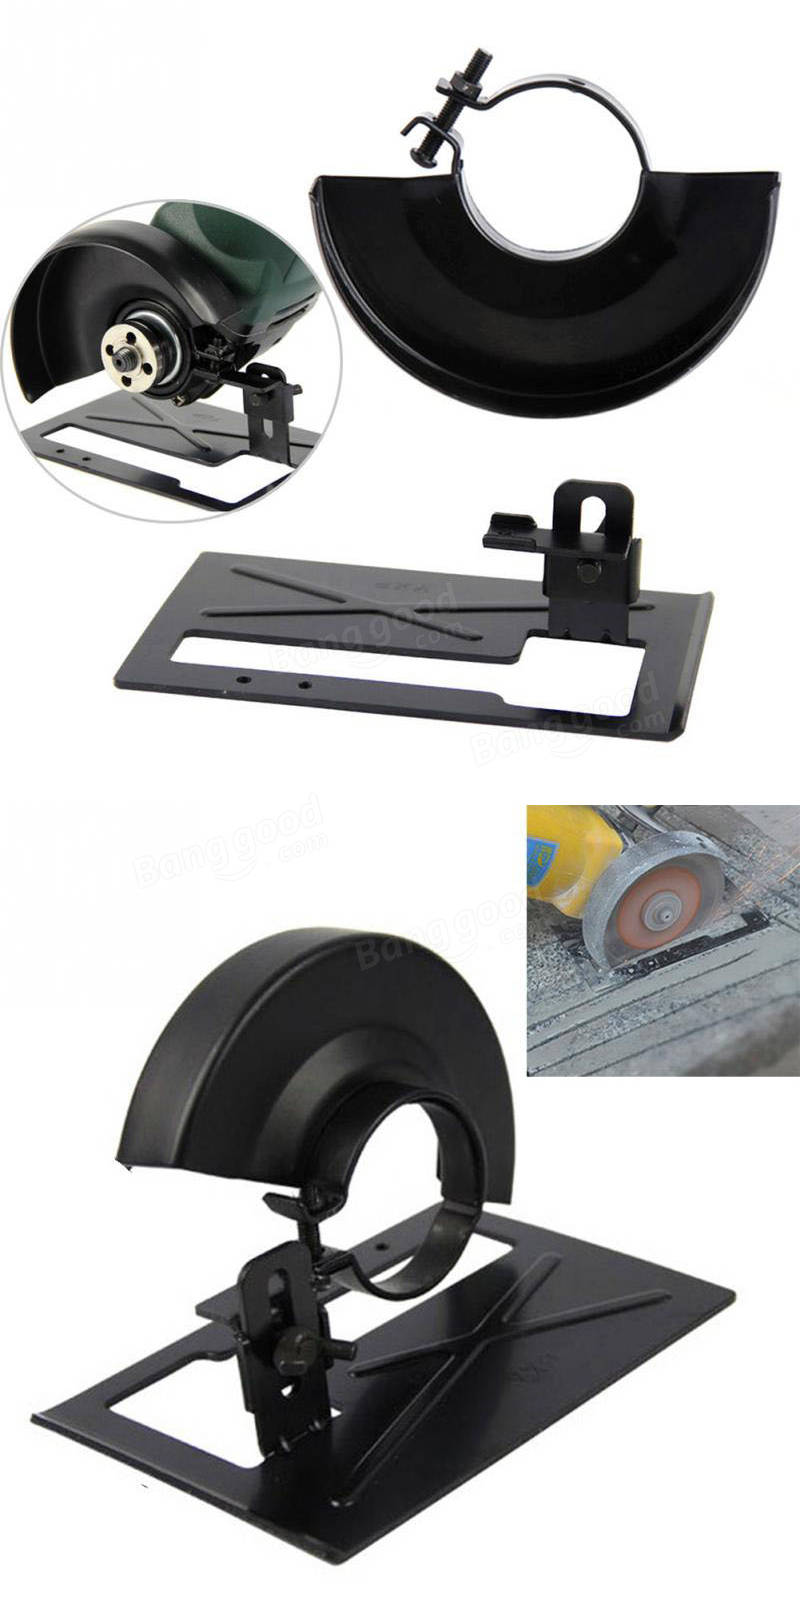 125mm Angle Grinder Bracket With Cover Changed Angle Grinder Into Cutting Machine